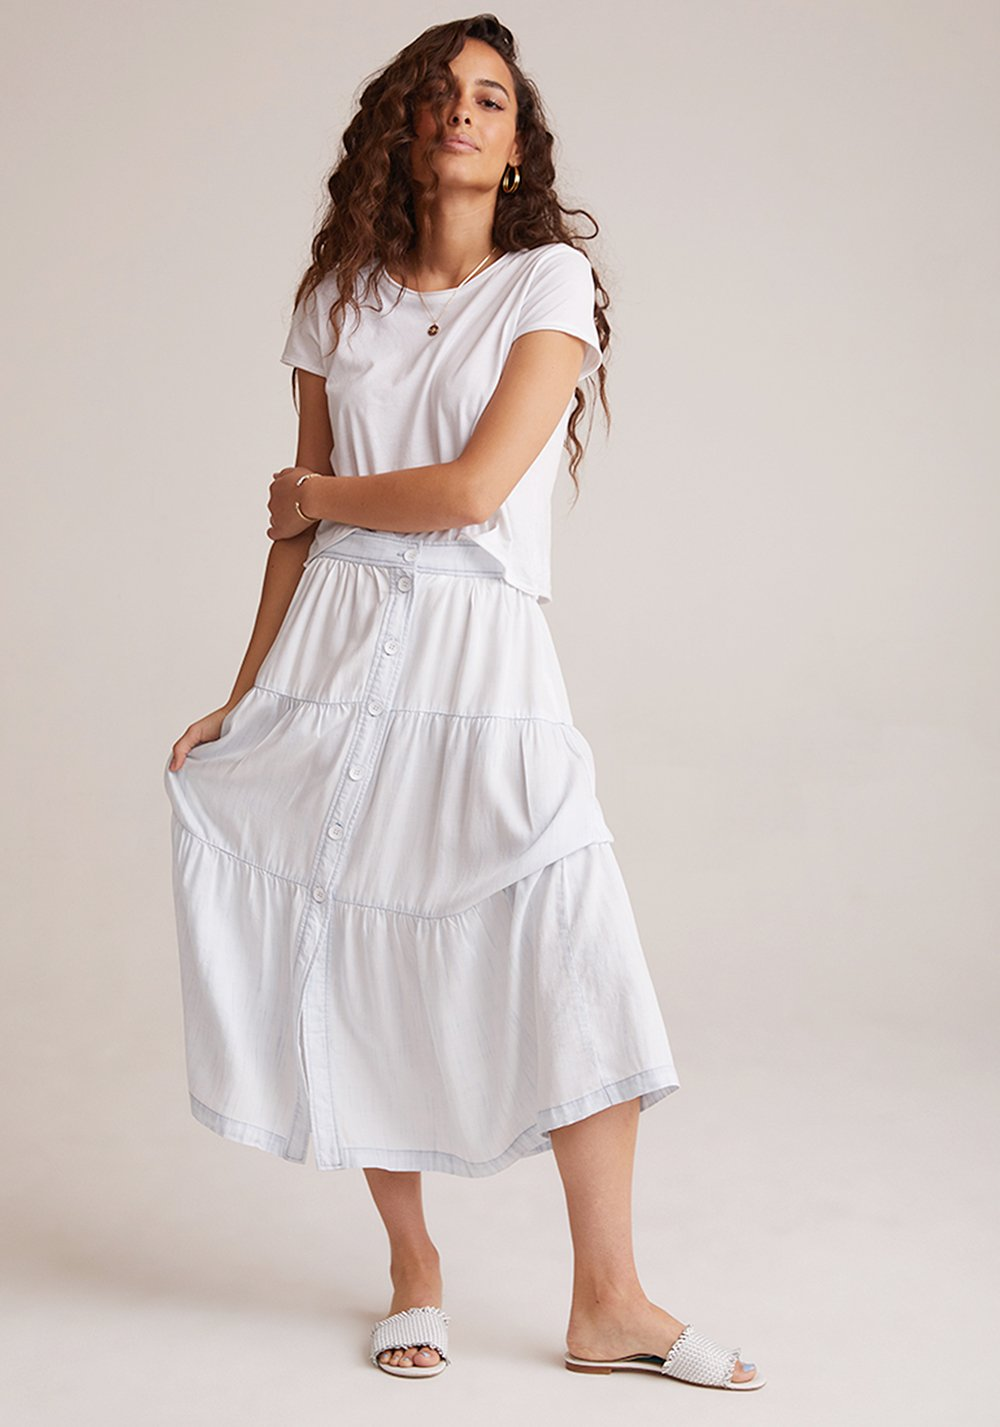 Button Front Tiered Skirt - White Out